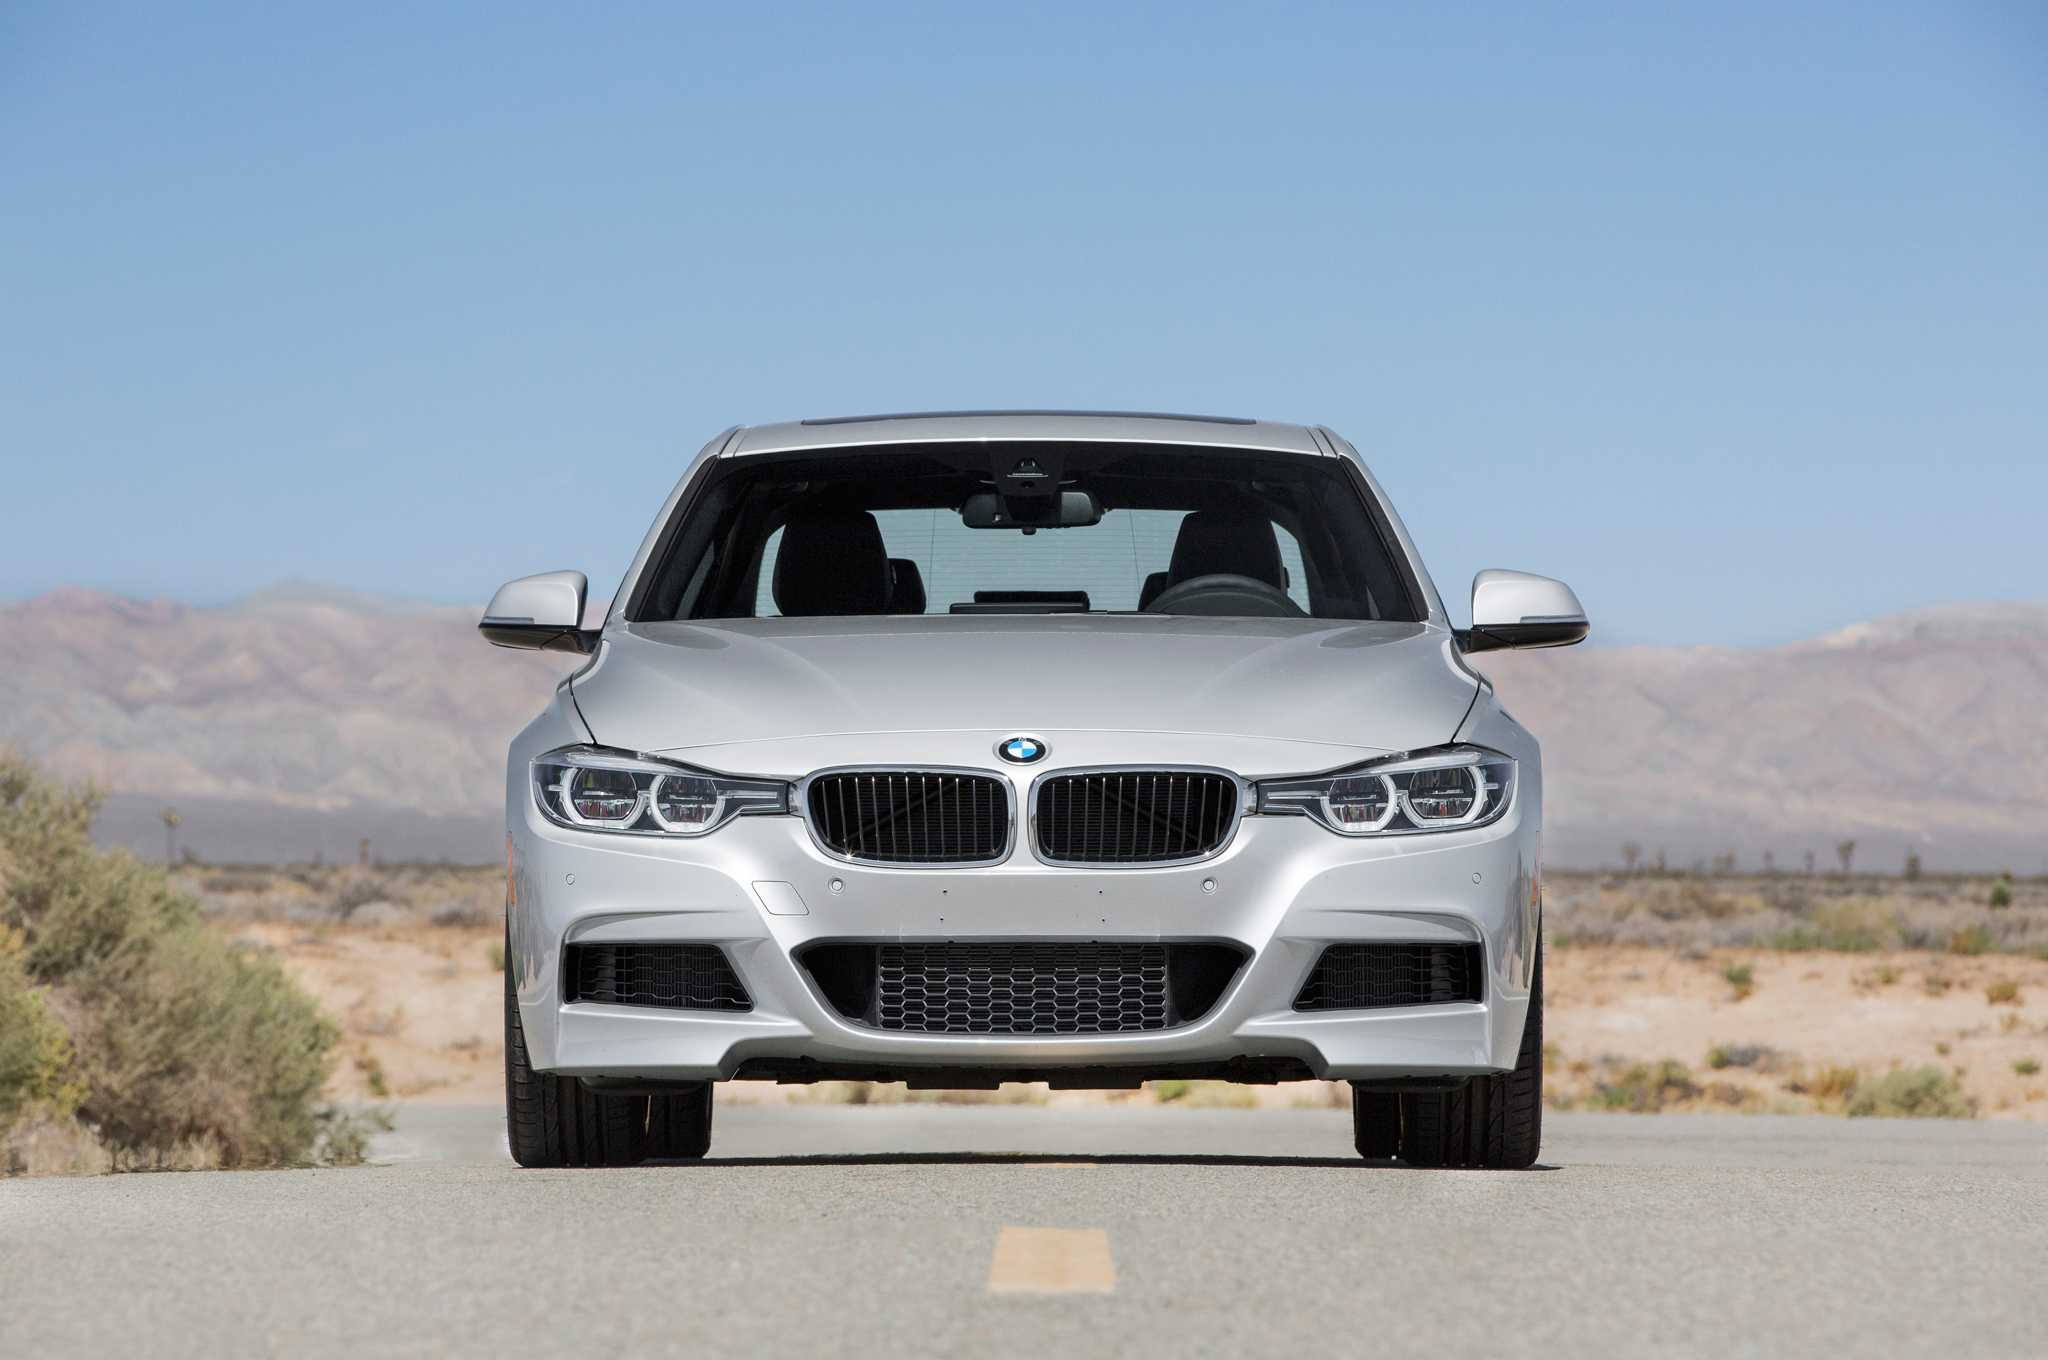 Next Gen BMW 3 Series Ready To Hit Stores With All-Electric Powertrain